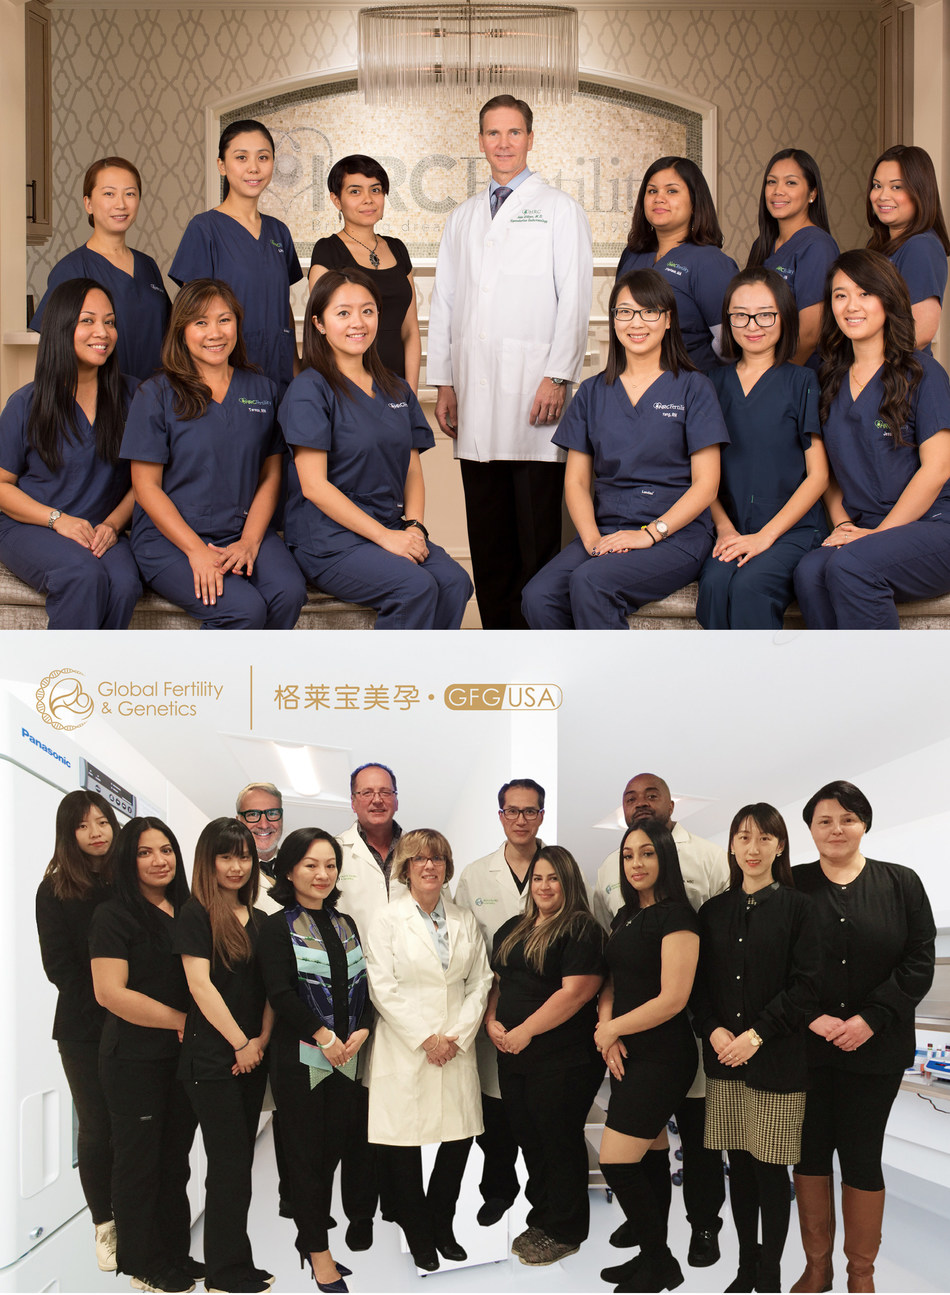 Ciming Boao International Hospital Assisted Reproduction Center Medical Team